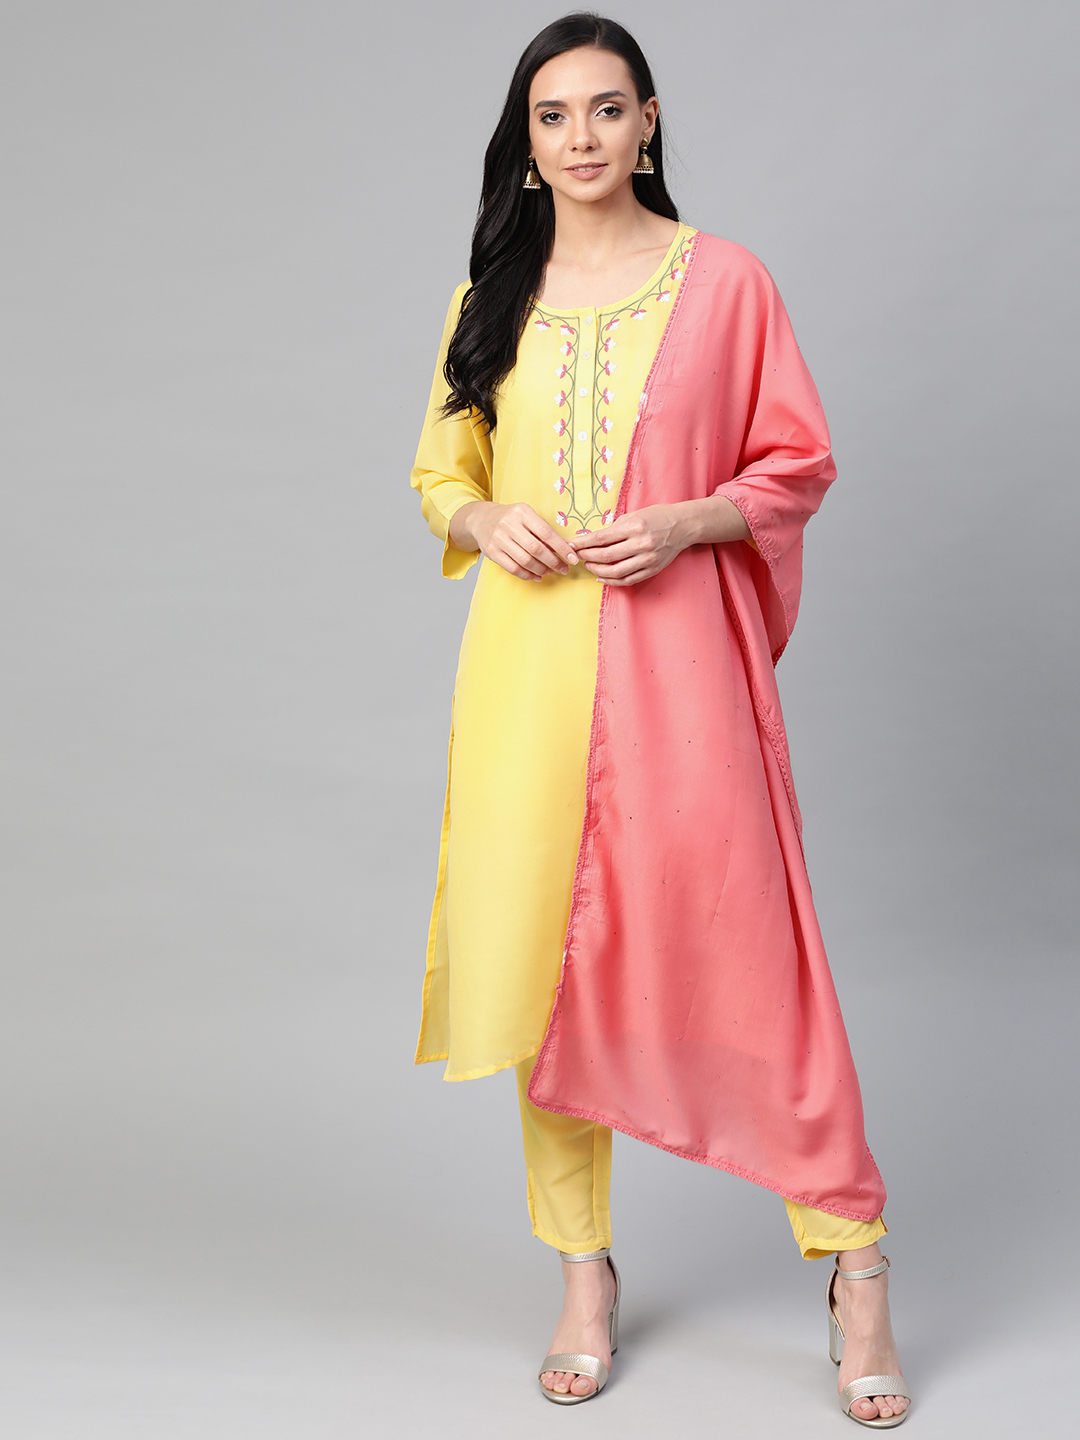 Jompers   Jompers® Women Yellow Cotton Silk Embroidered Kurta with pants and dupatta set